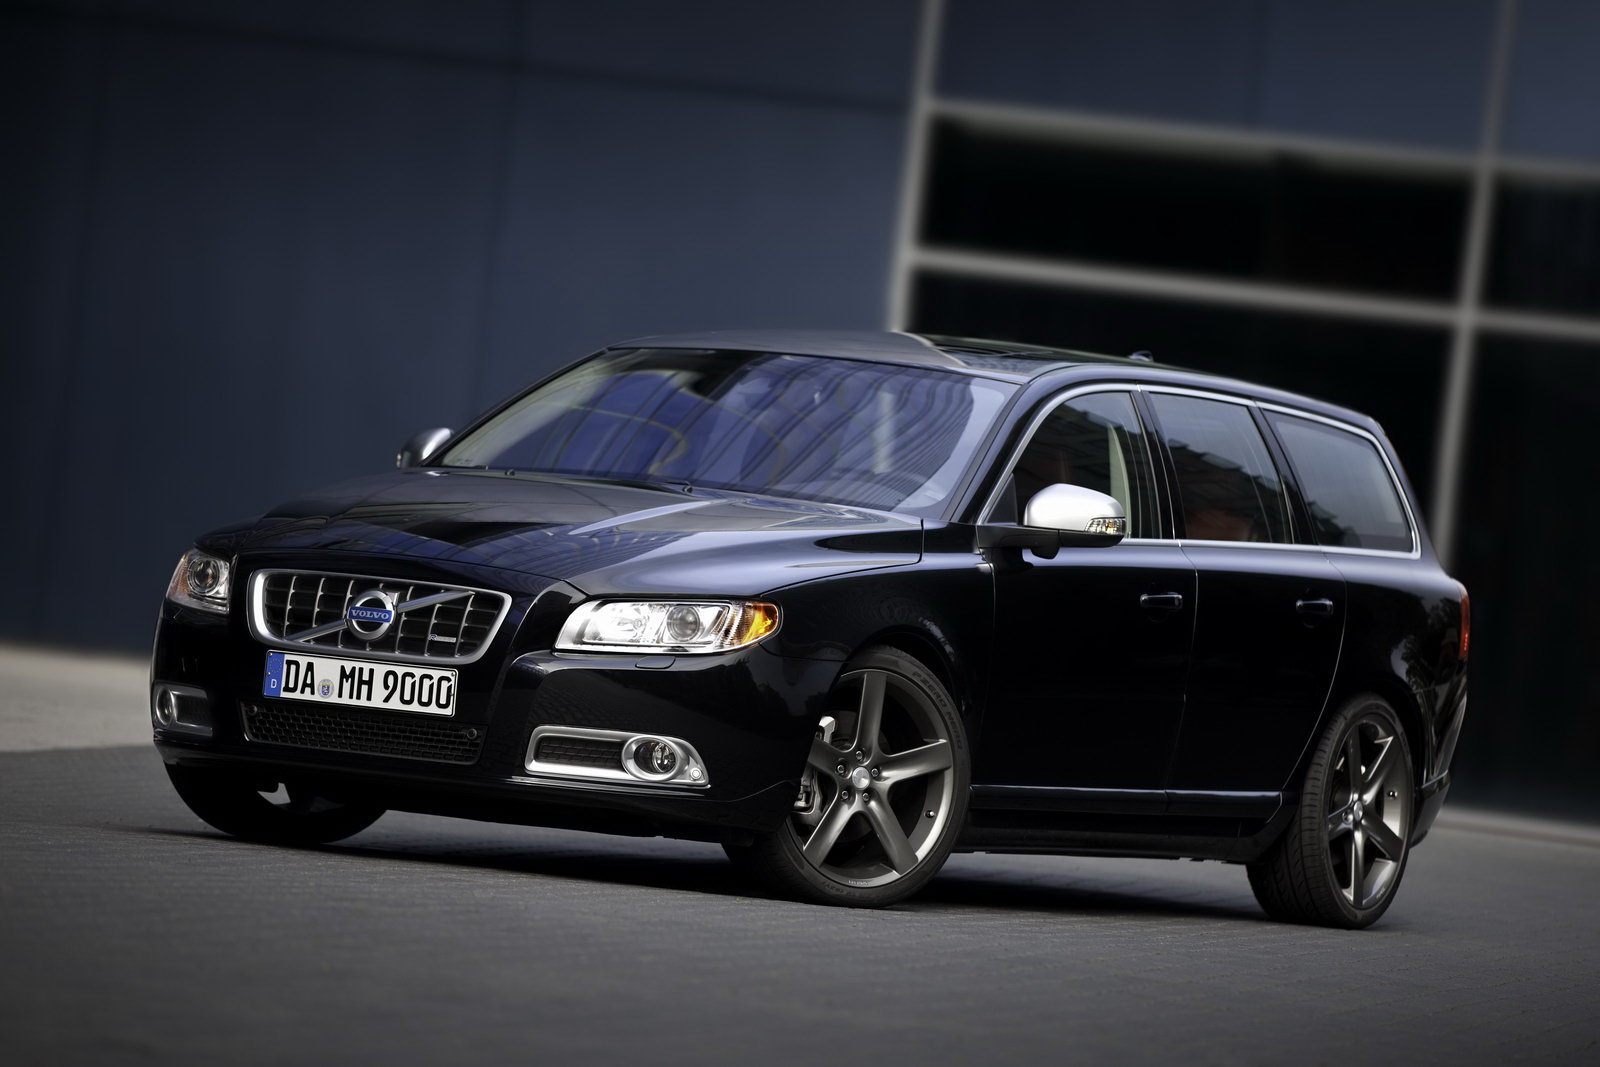 Magnificent Volvo V70 R-Design 1600 x 1067 · 276 kB · jpeg